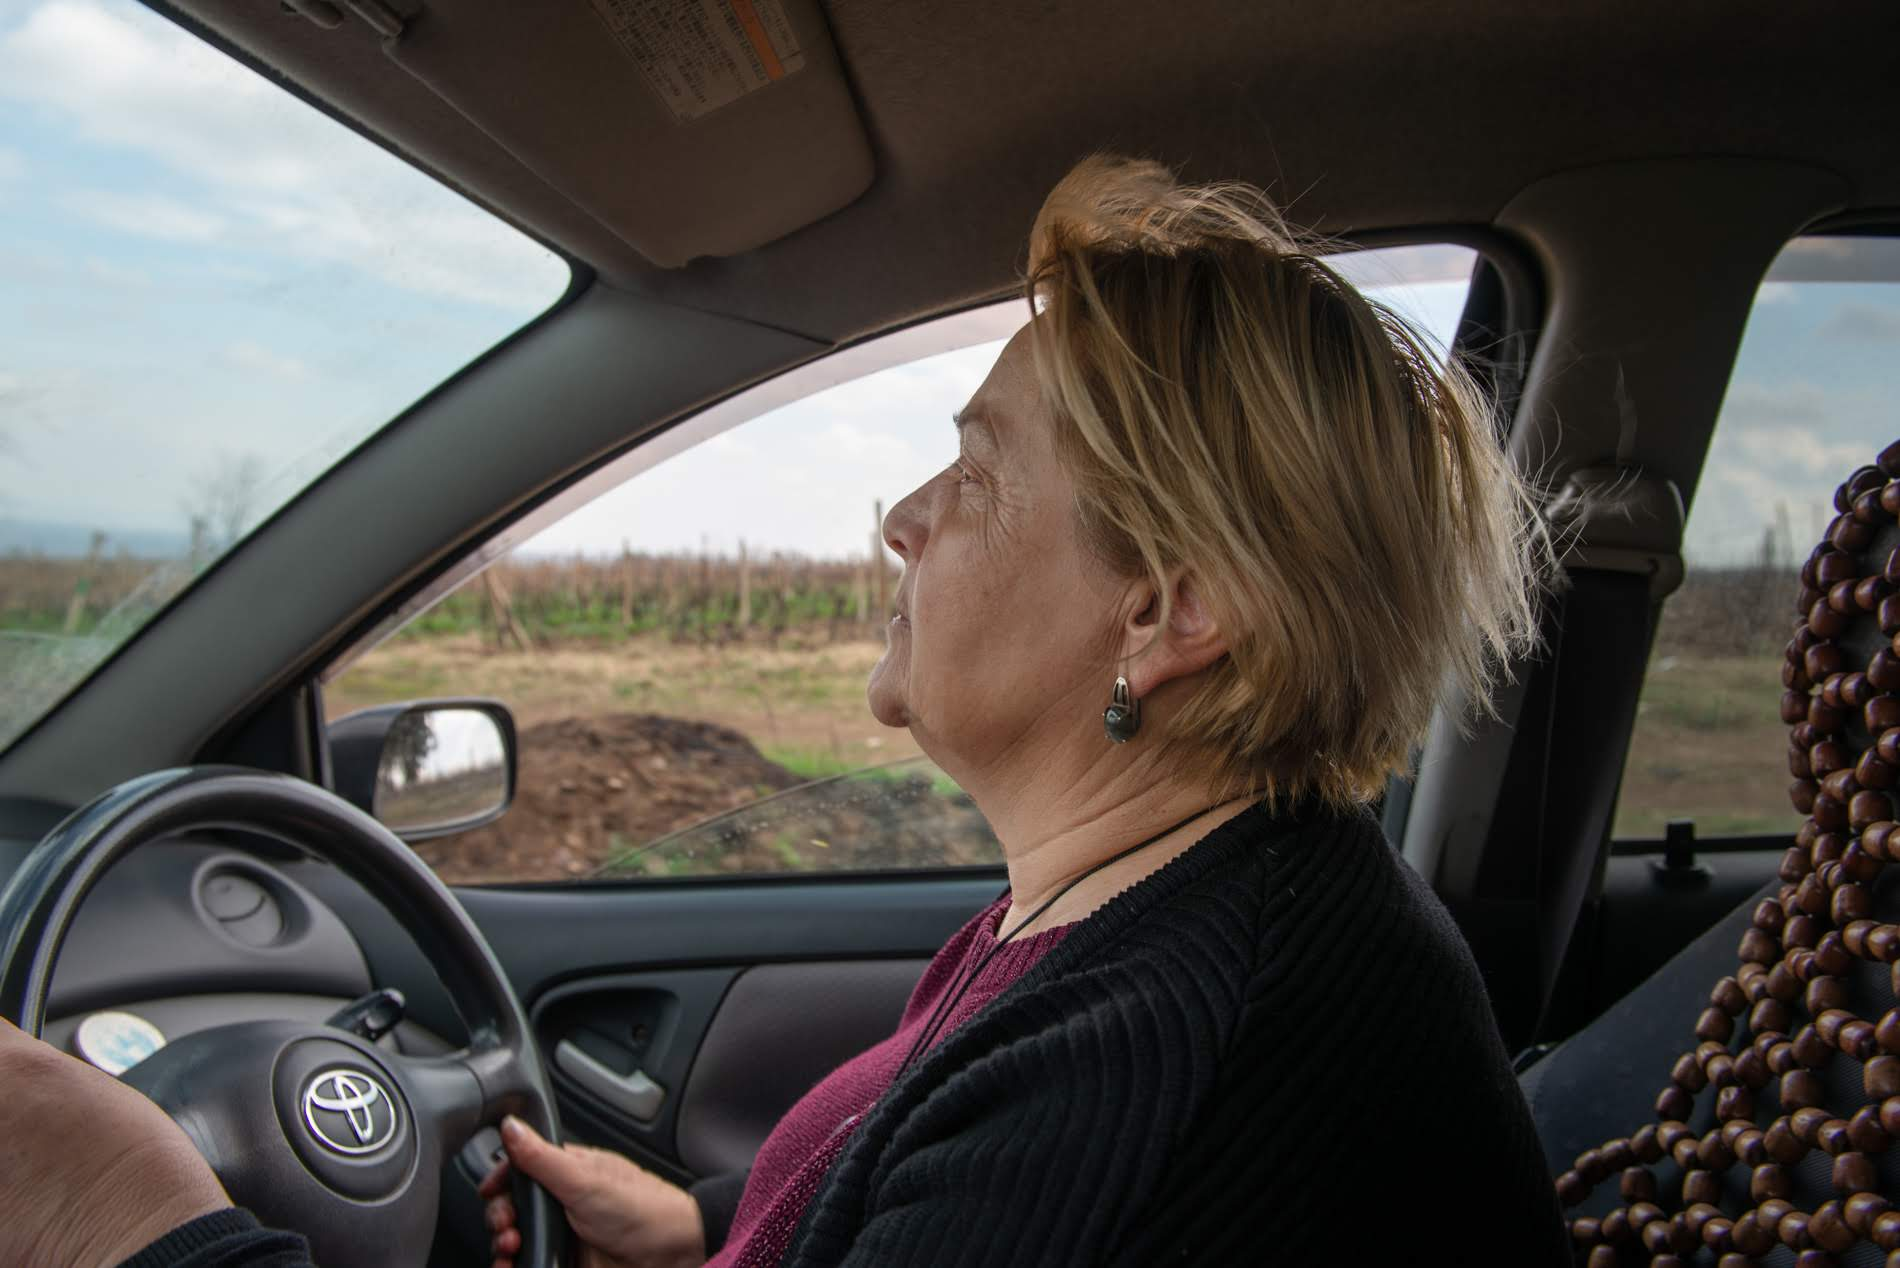 After her husband passed away and she took over the farm. The first thing Marina did was get a driver's license.  Photo: Tamuna Chkareuli/OC Media.